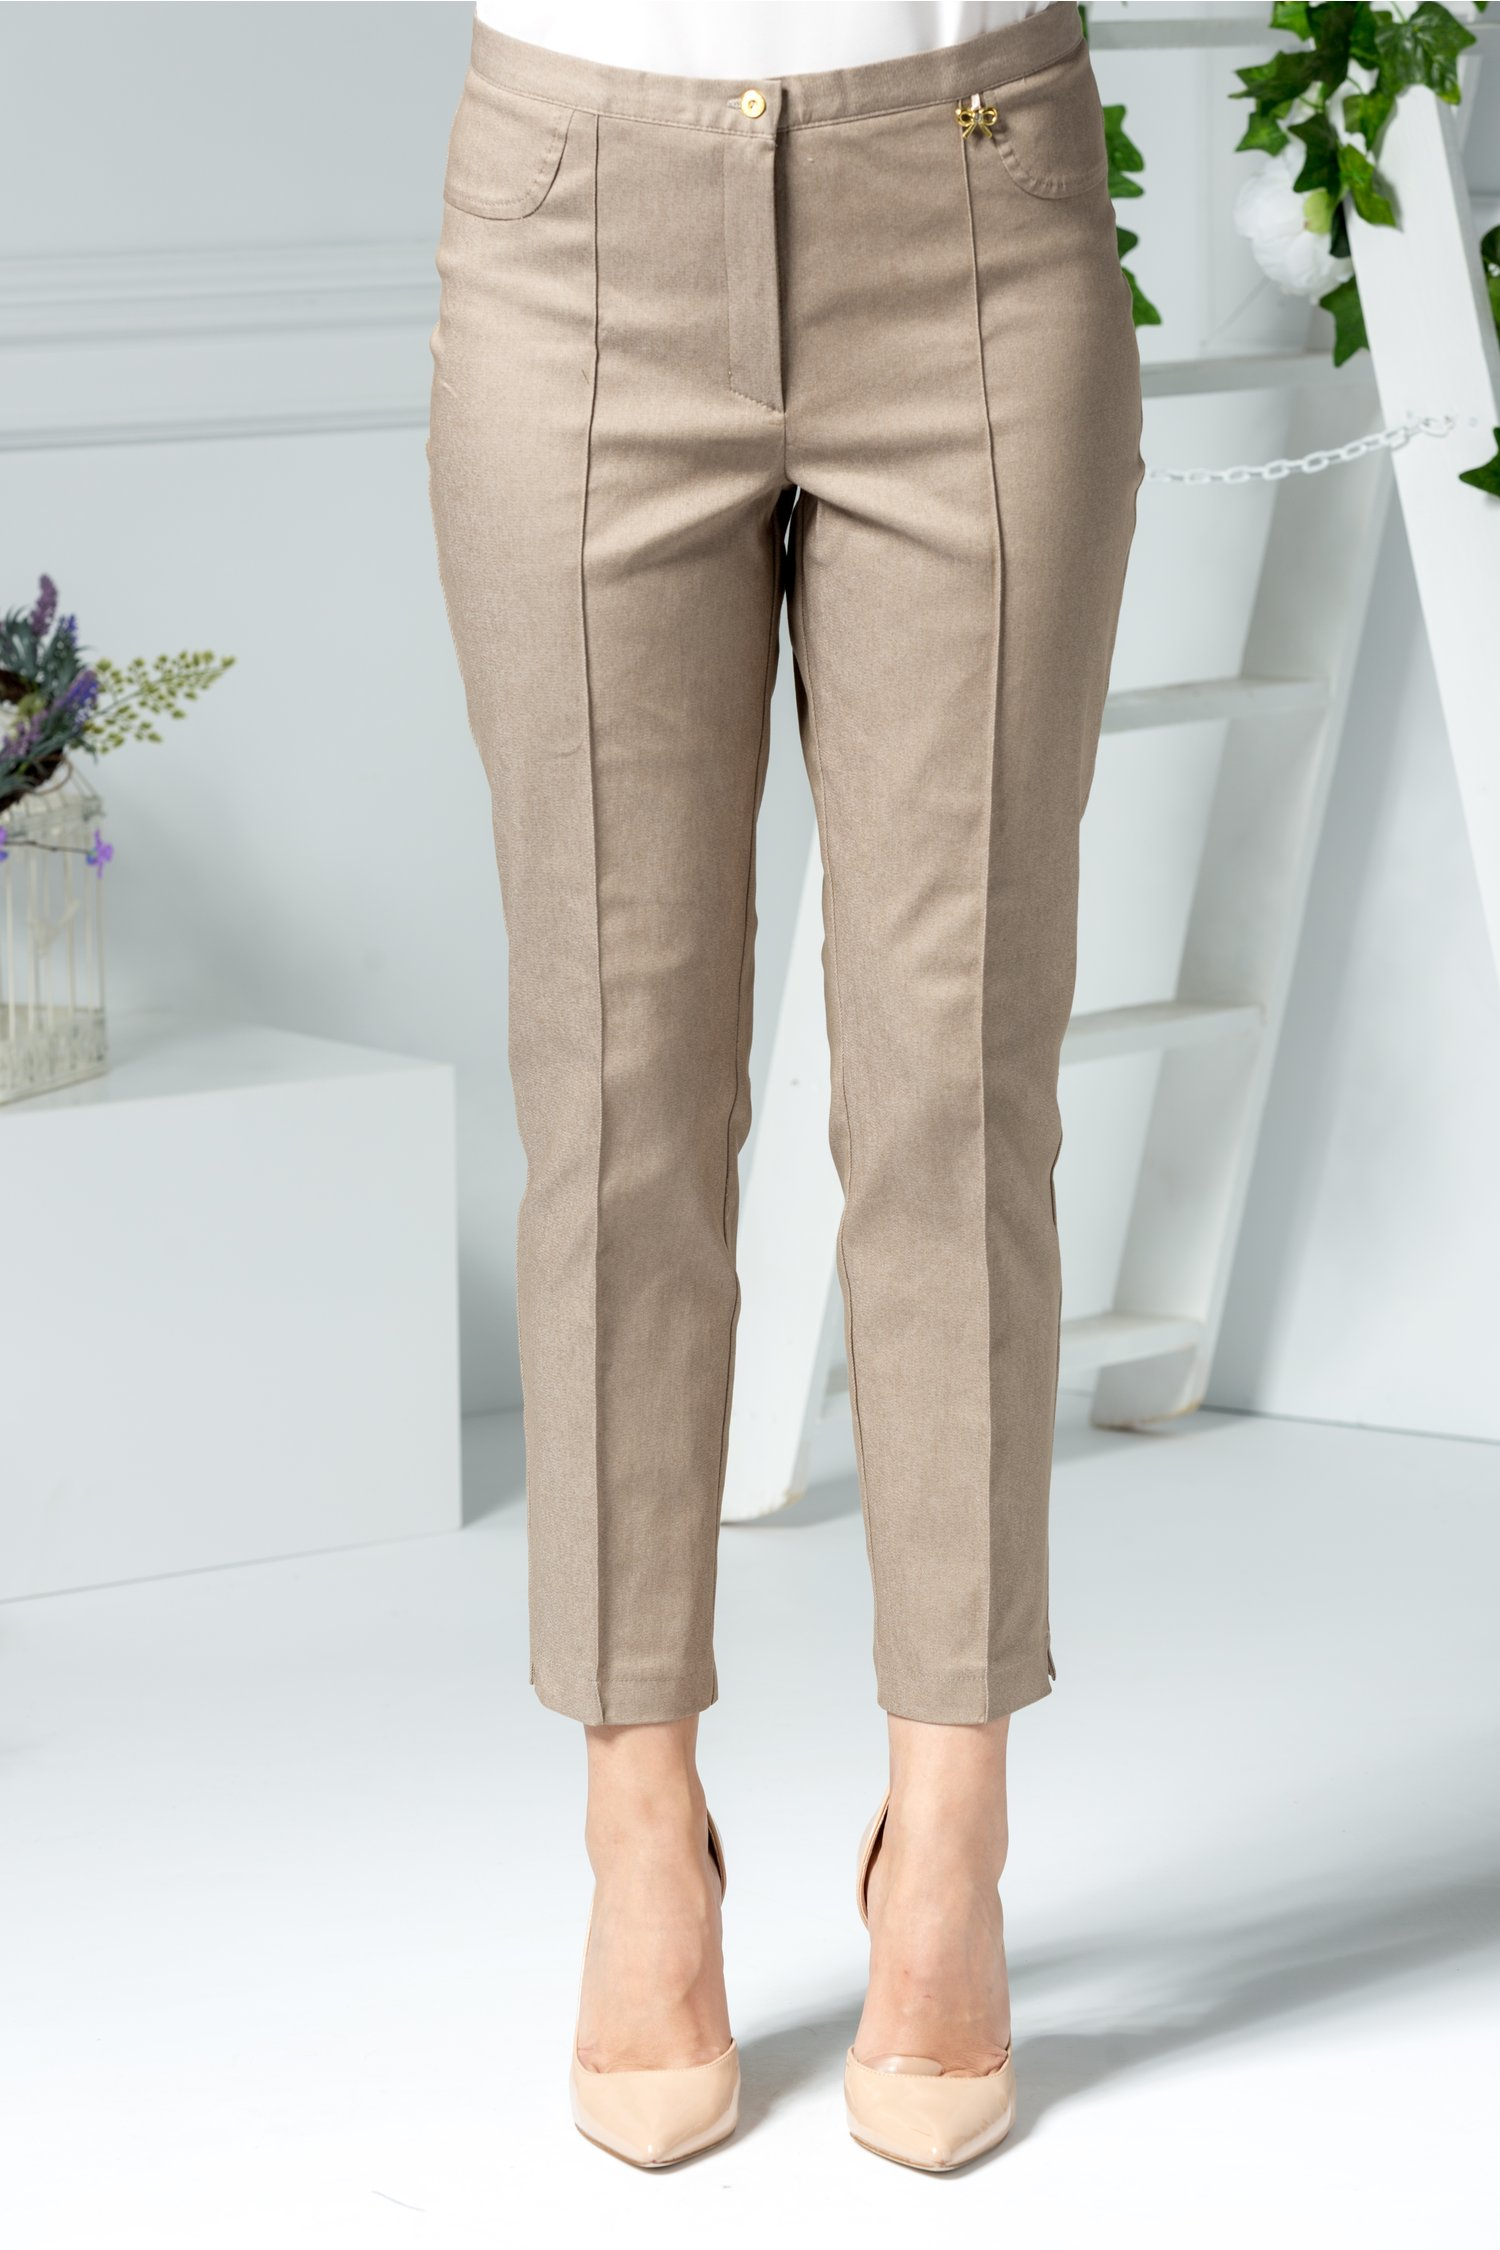 Pantalon Maia office bej